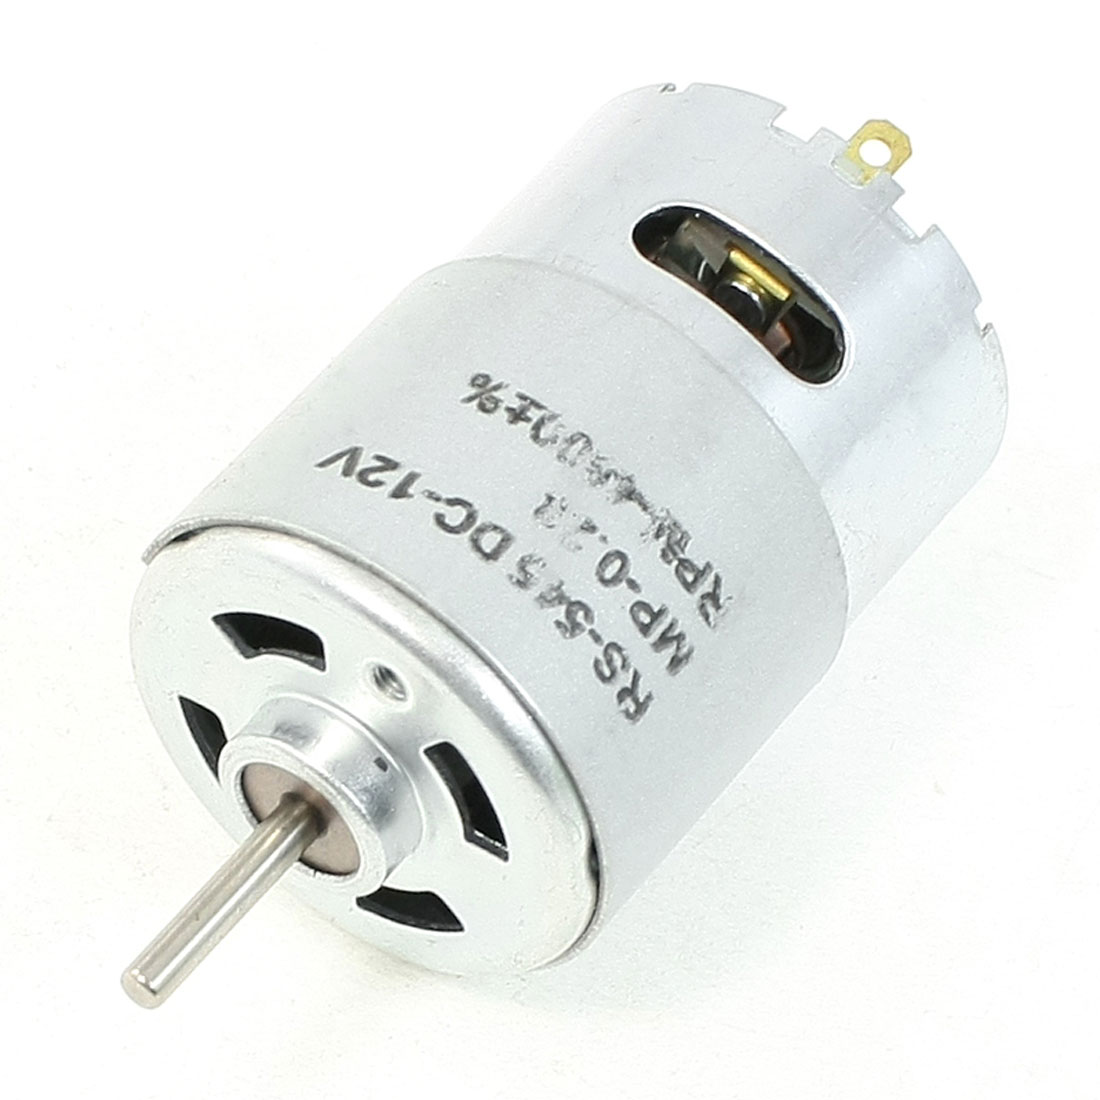 4000 RPM 12V High Torque Cylinder Shaped Electric DC Motor